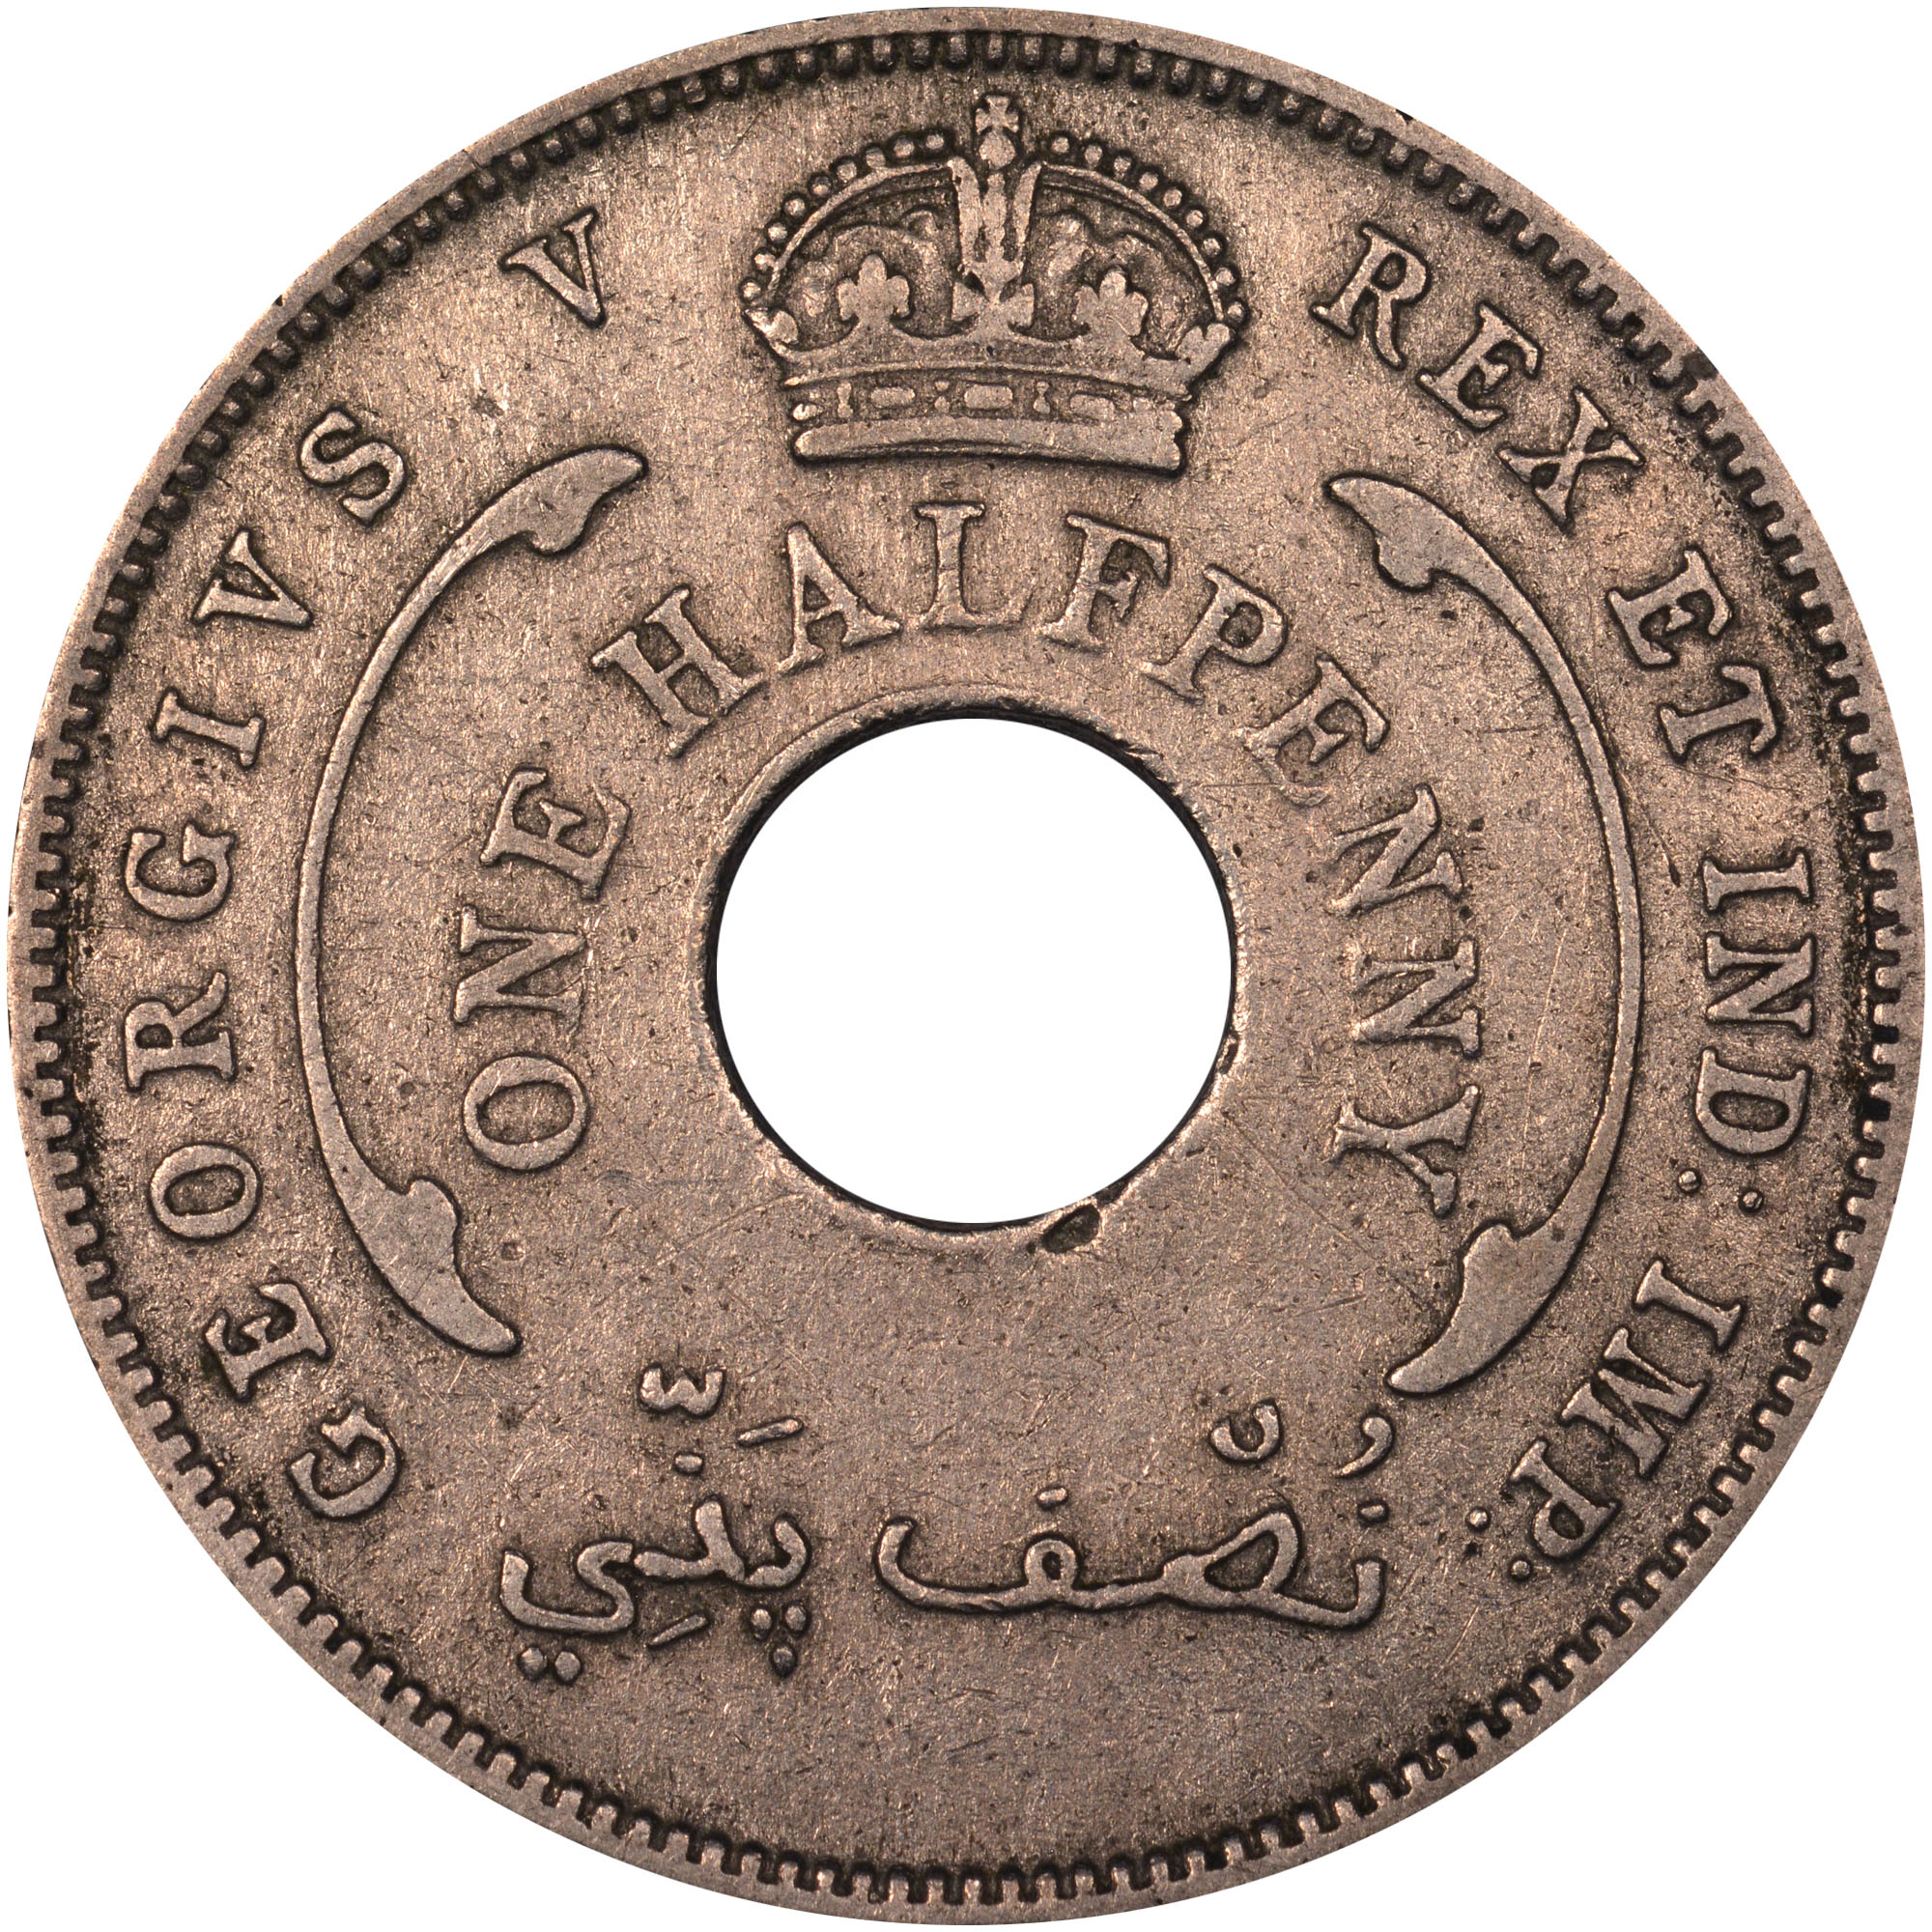 1912-1936 British West Africa 1/2 Penny obverse